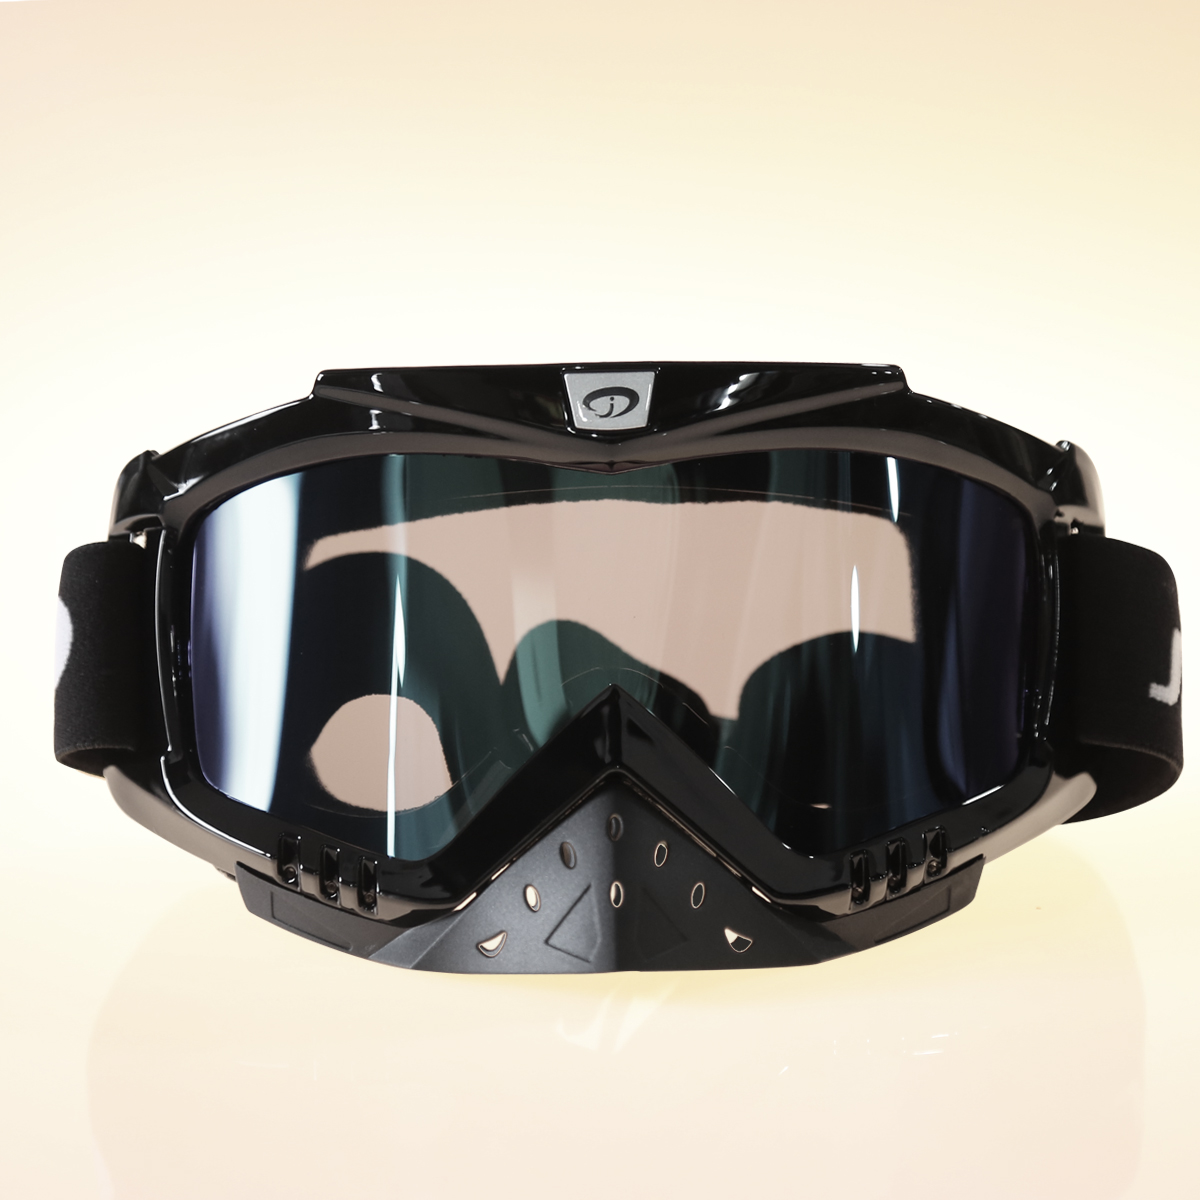 52130540db41c1 UV Protection Hommes Femmes Paintball Airsoft Sports de Plein Air Chasse  Lunettes Tactiques Militaires Lunettes De Vélo De Vélo Lunettes